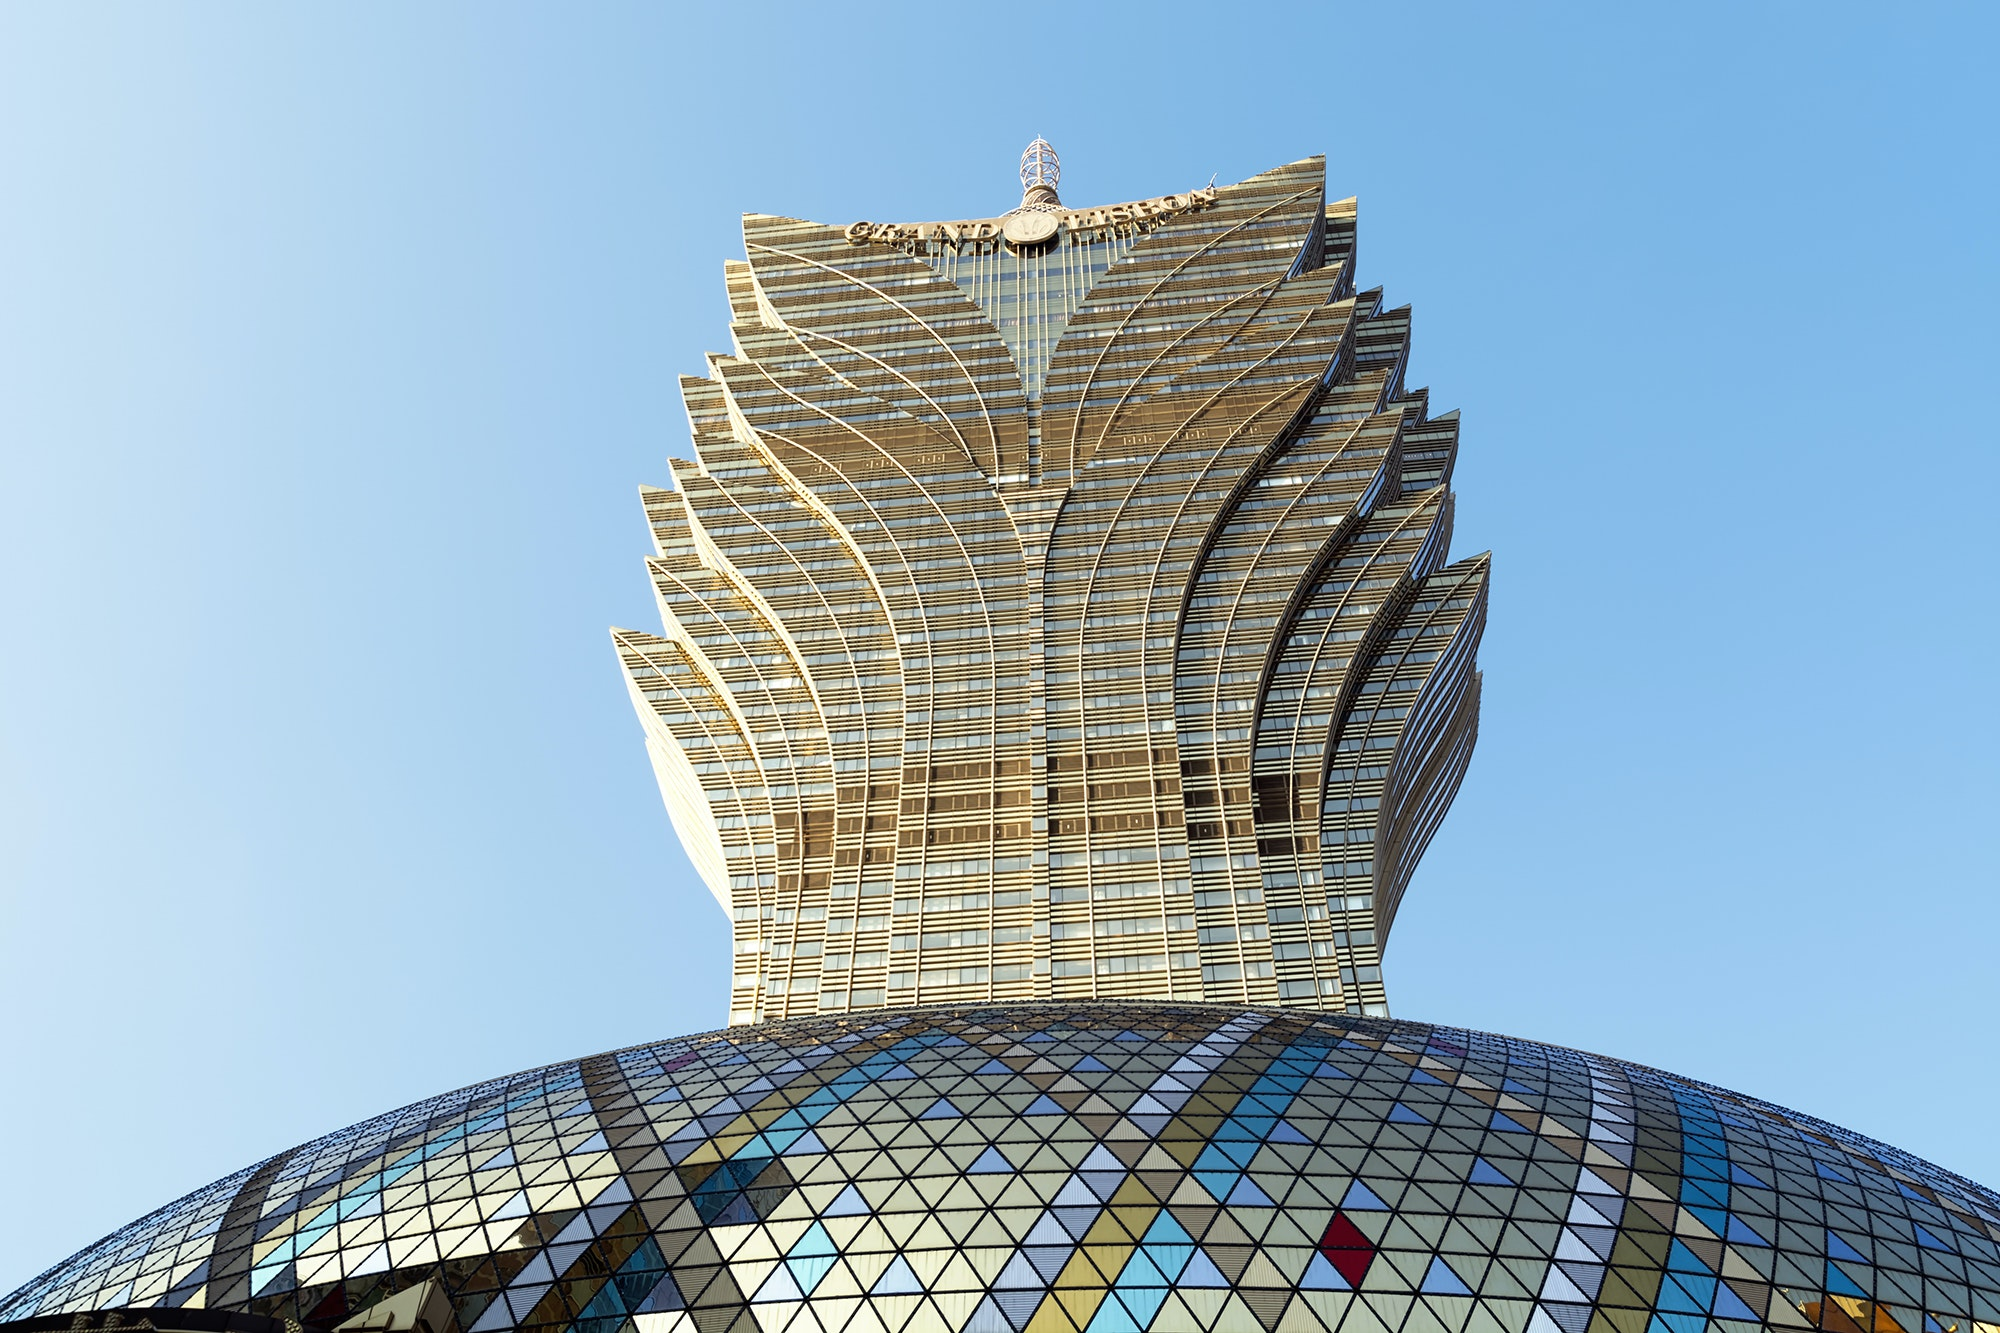 Robuchon au Dôme is located at the top of the Grand Lisboa hotel in Macau.